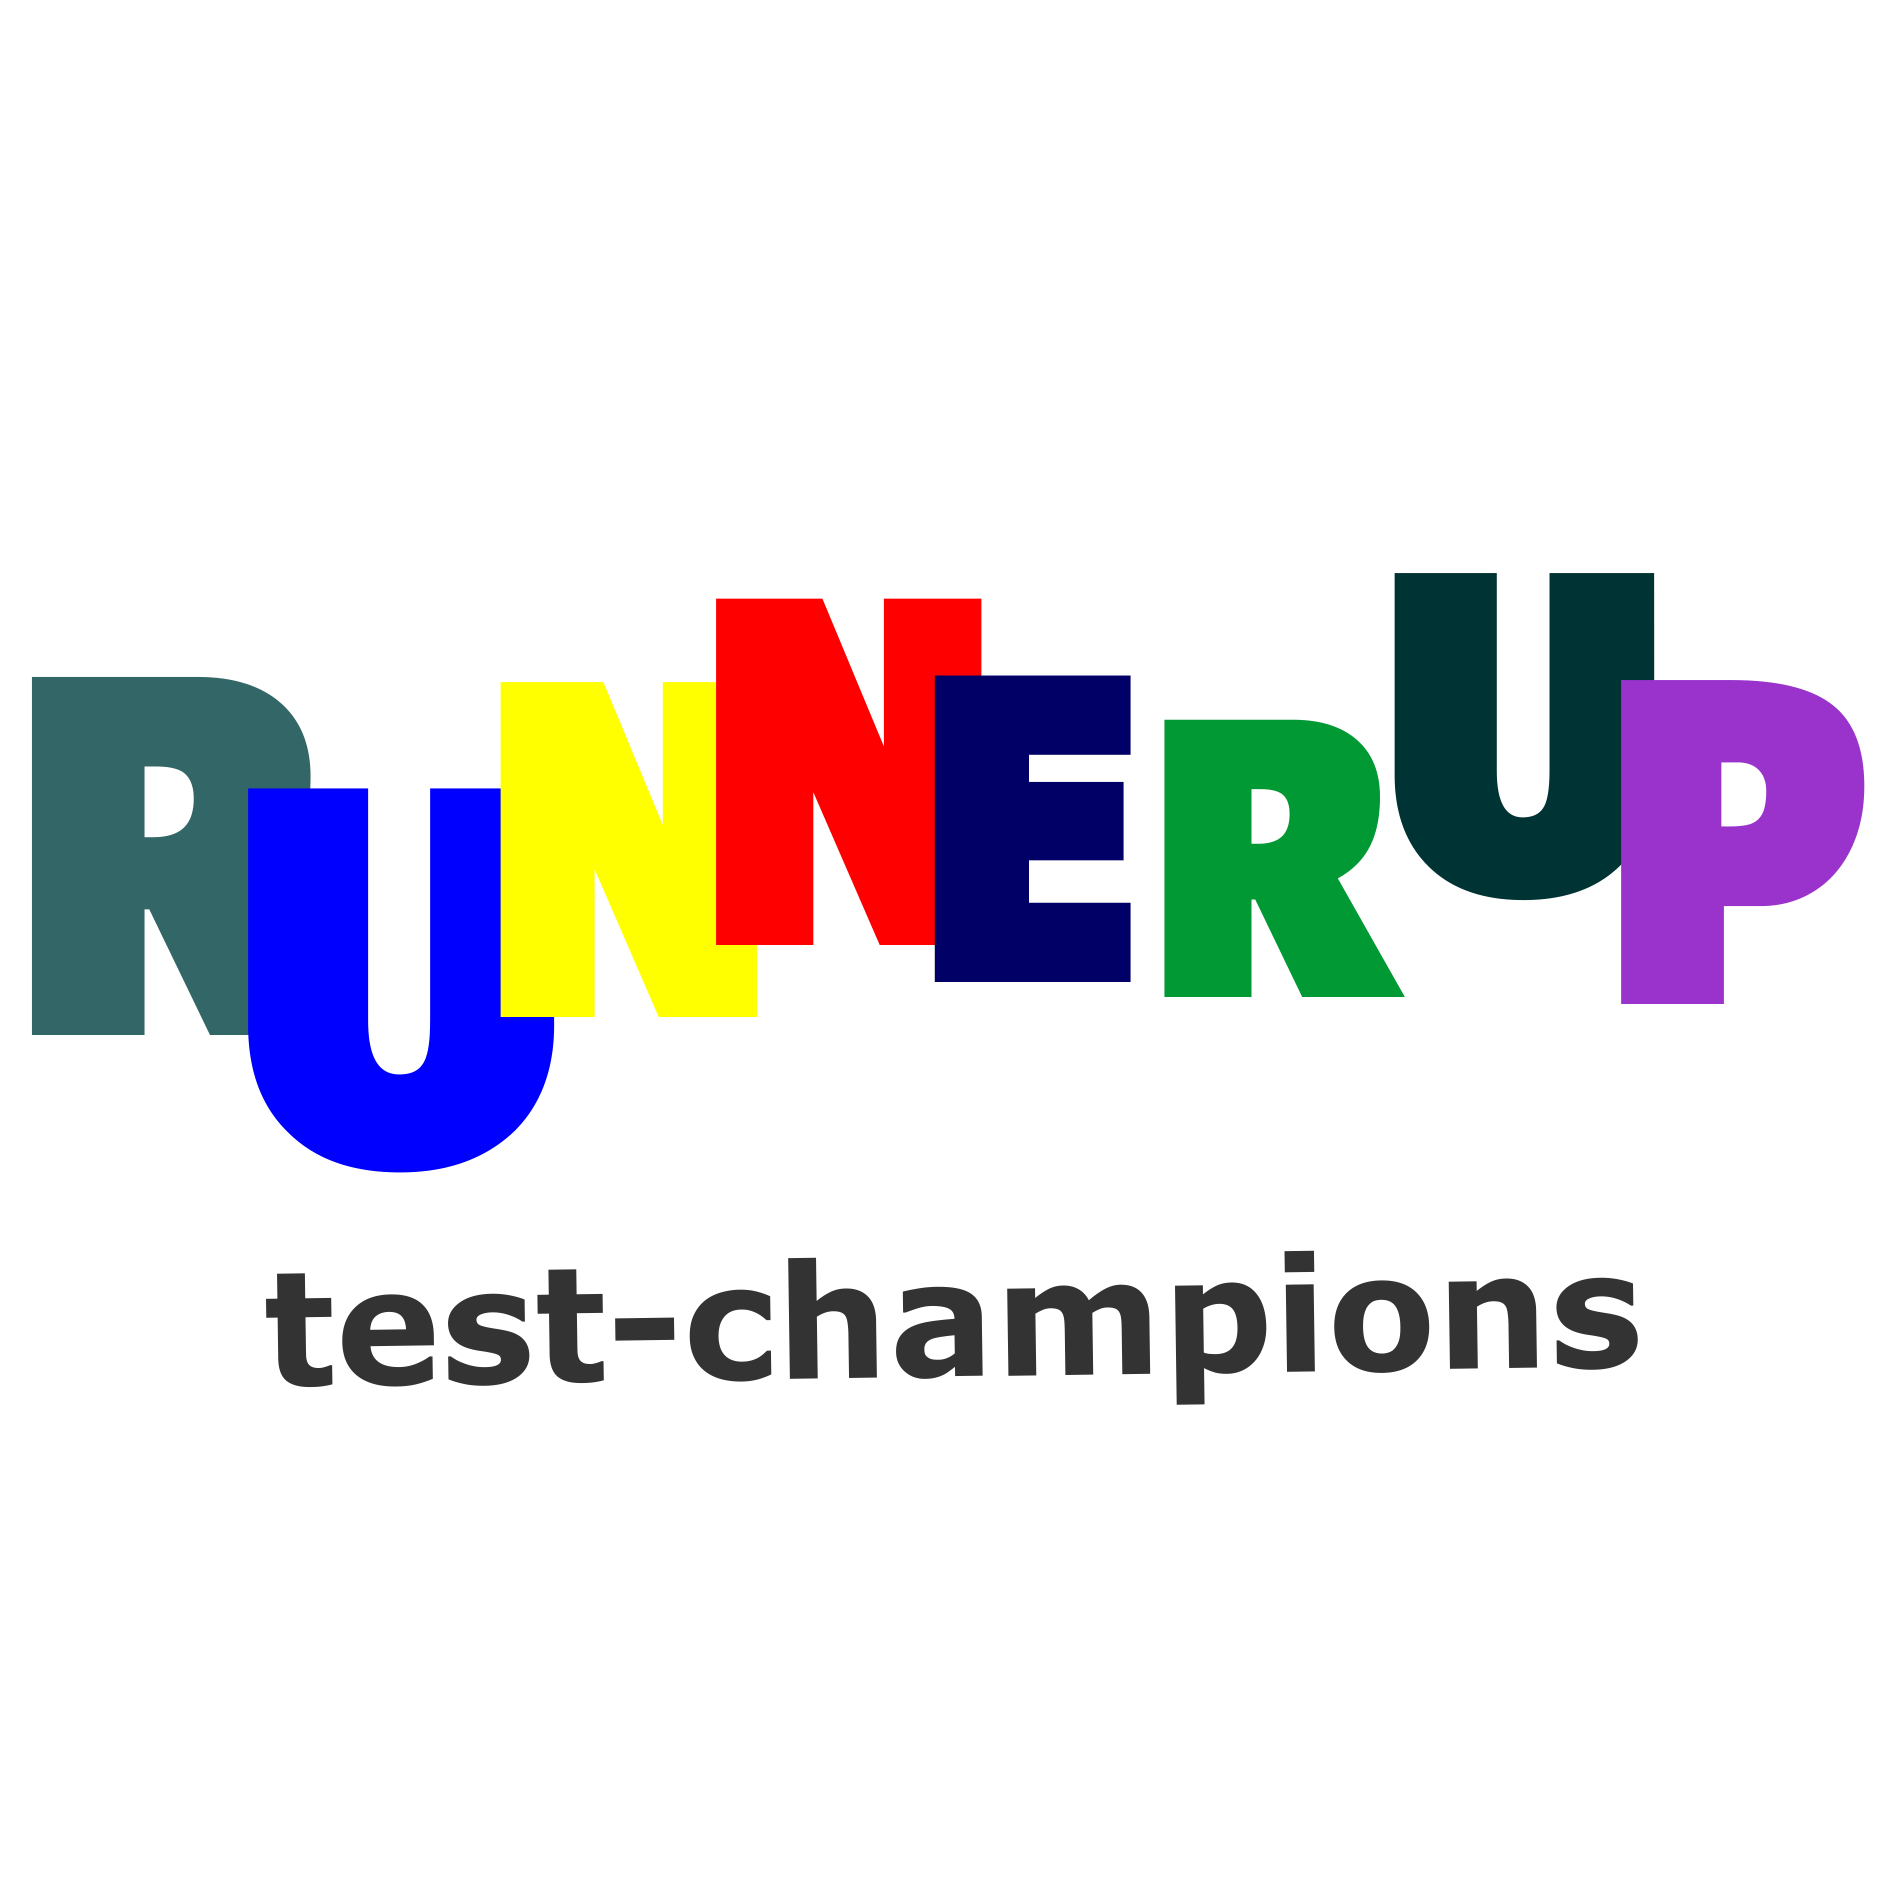 Pool Komplettset Mit Sandfilteranlage Test Schwimmbecken Swimming Pool Und Quick Up Test Champions 2018